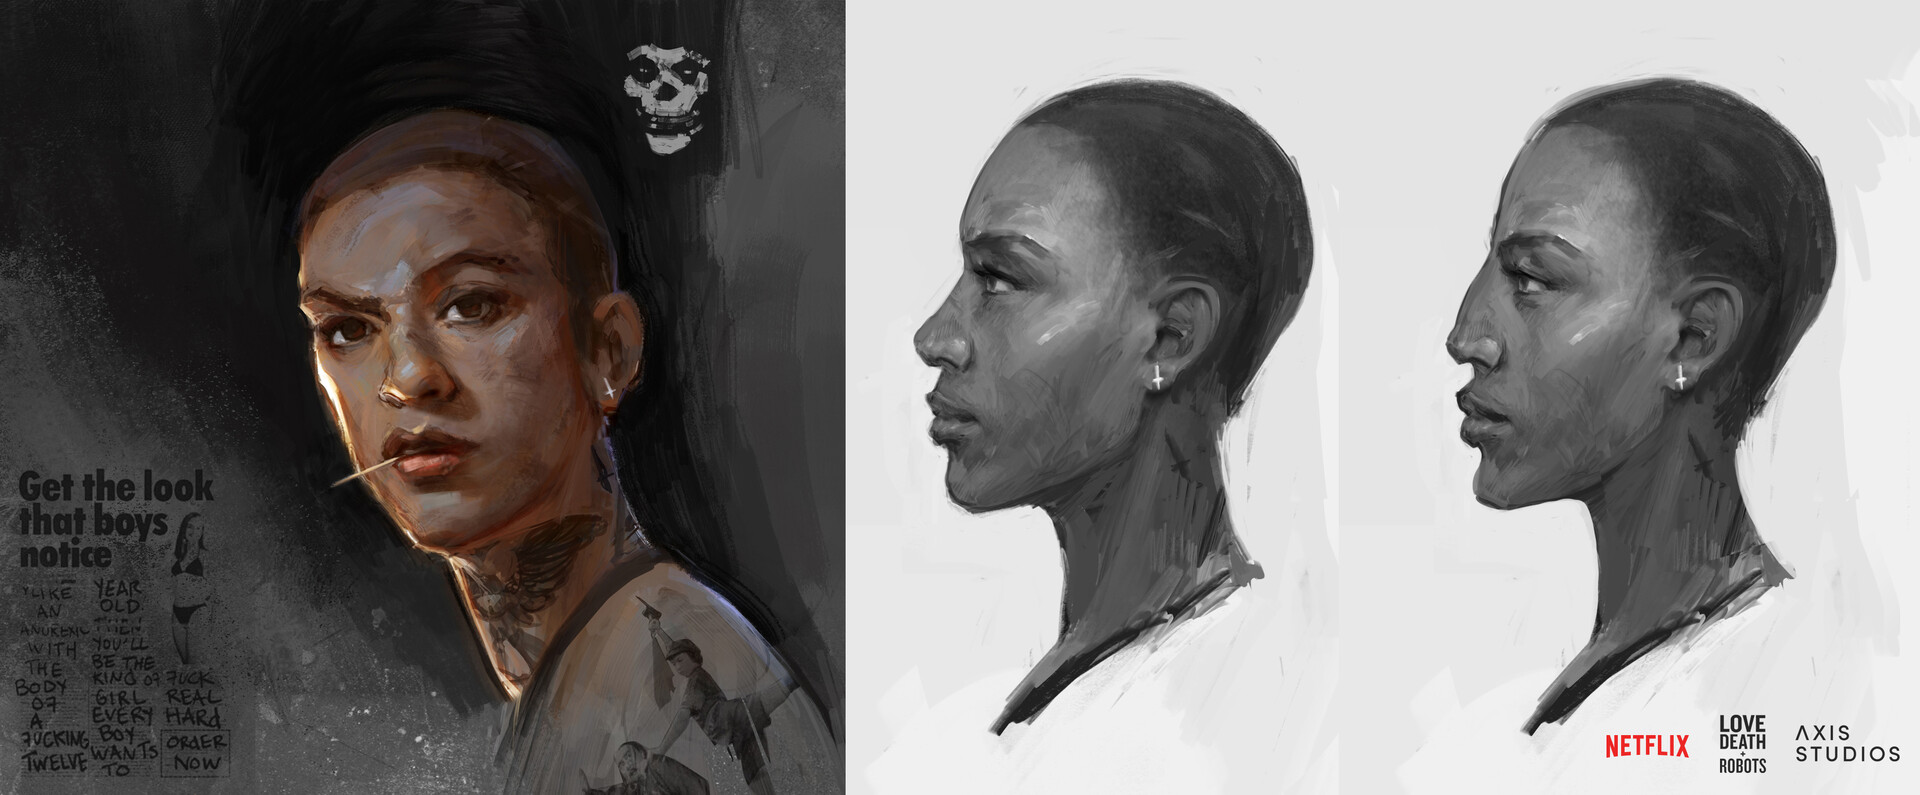 Bram sels hhd character sketches03 bram sels